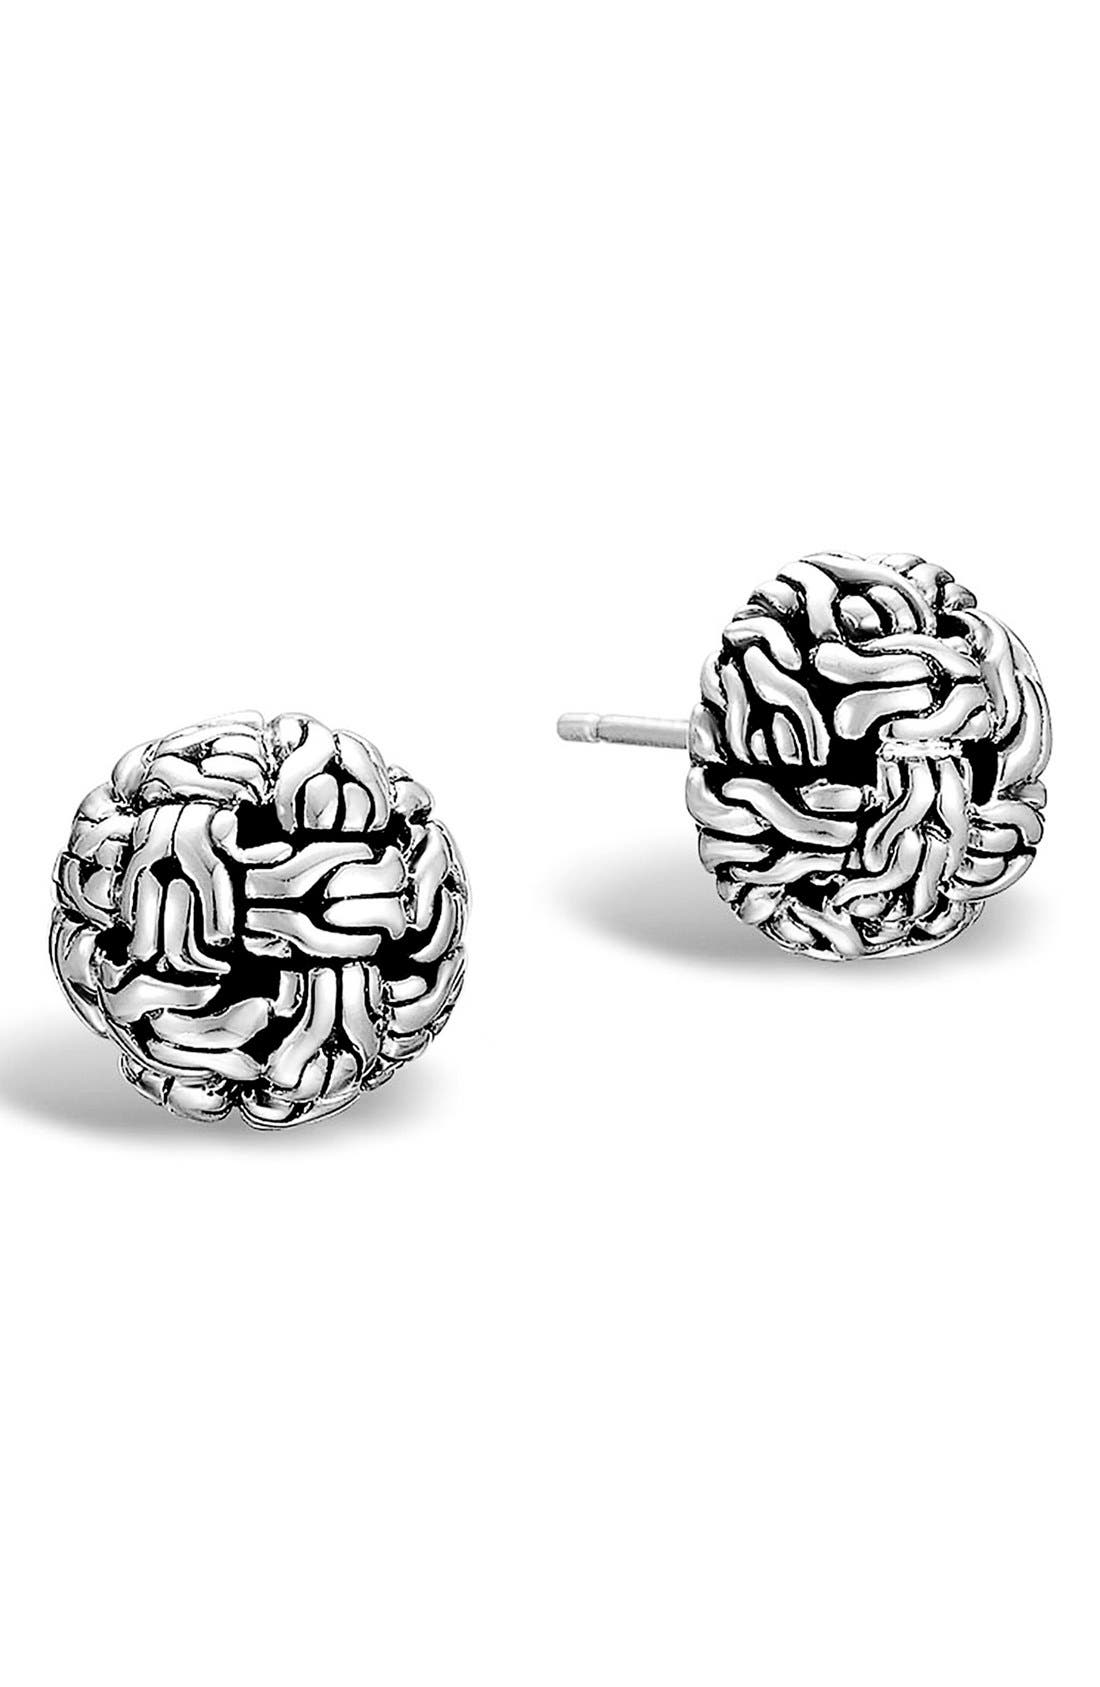 JOHN HARDY 'Classic Chain' Stud Earrings, Main, color, STERLING SILVER